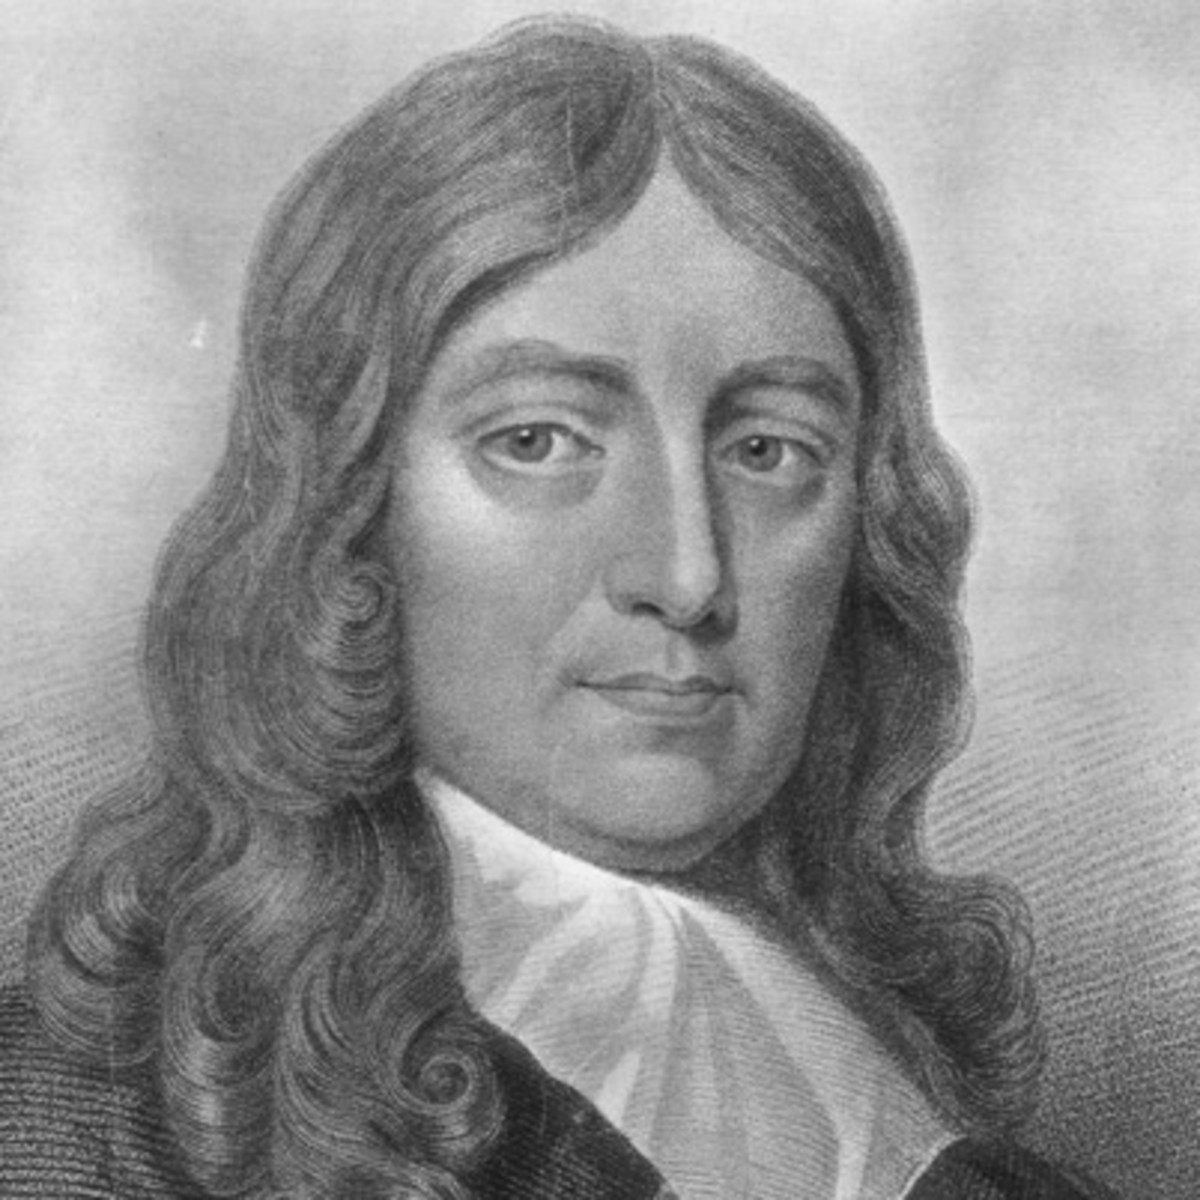 john milton poet historian writer biography